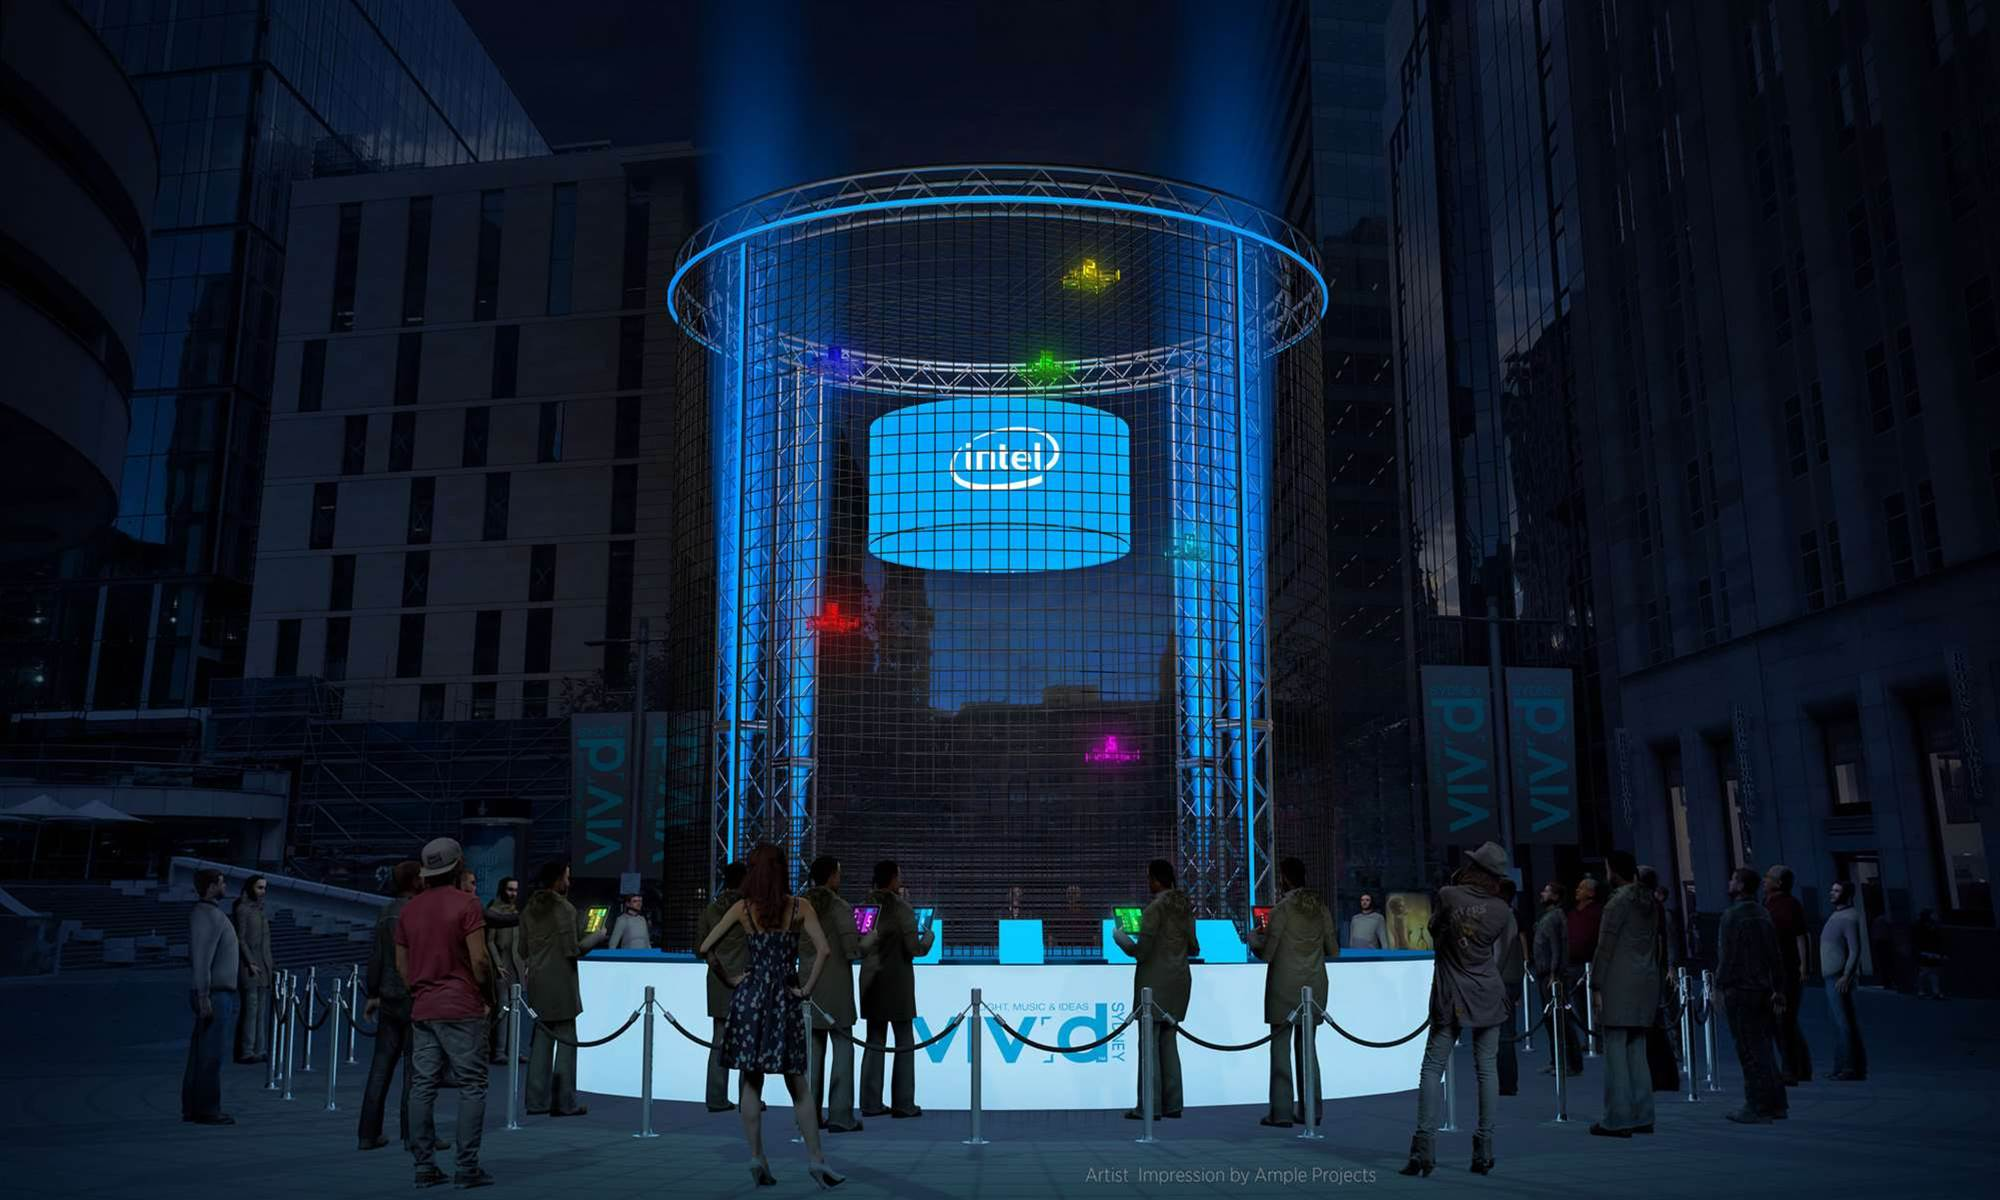 Intel brings its Game of Drones to this year's Vivid Sydney